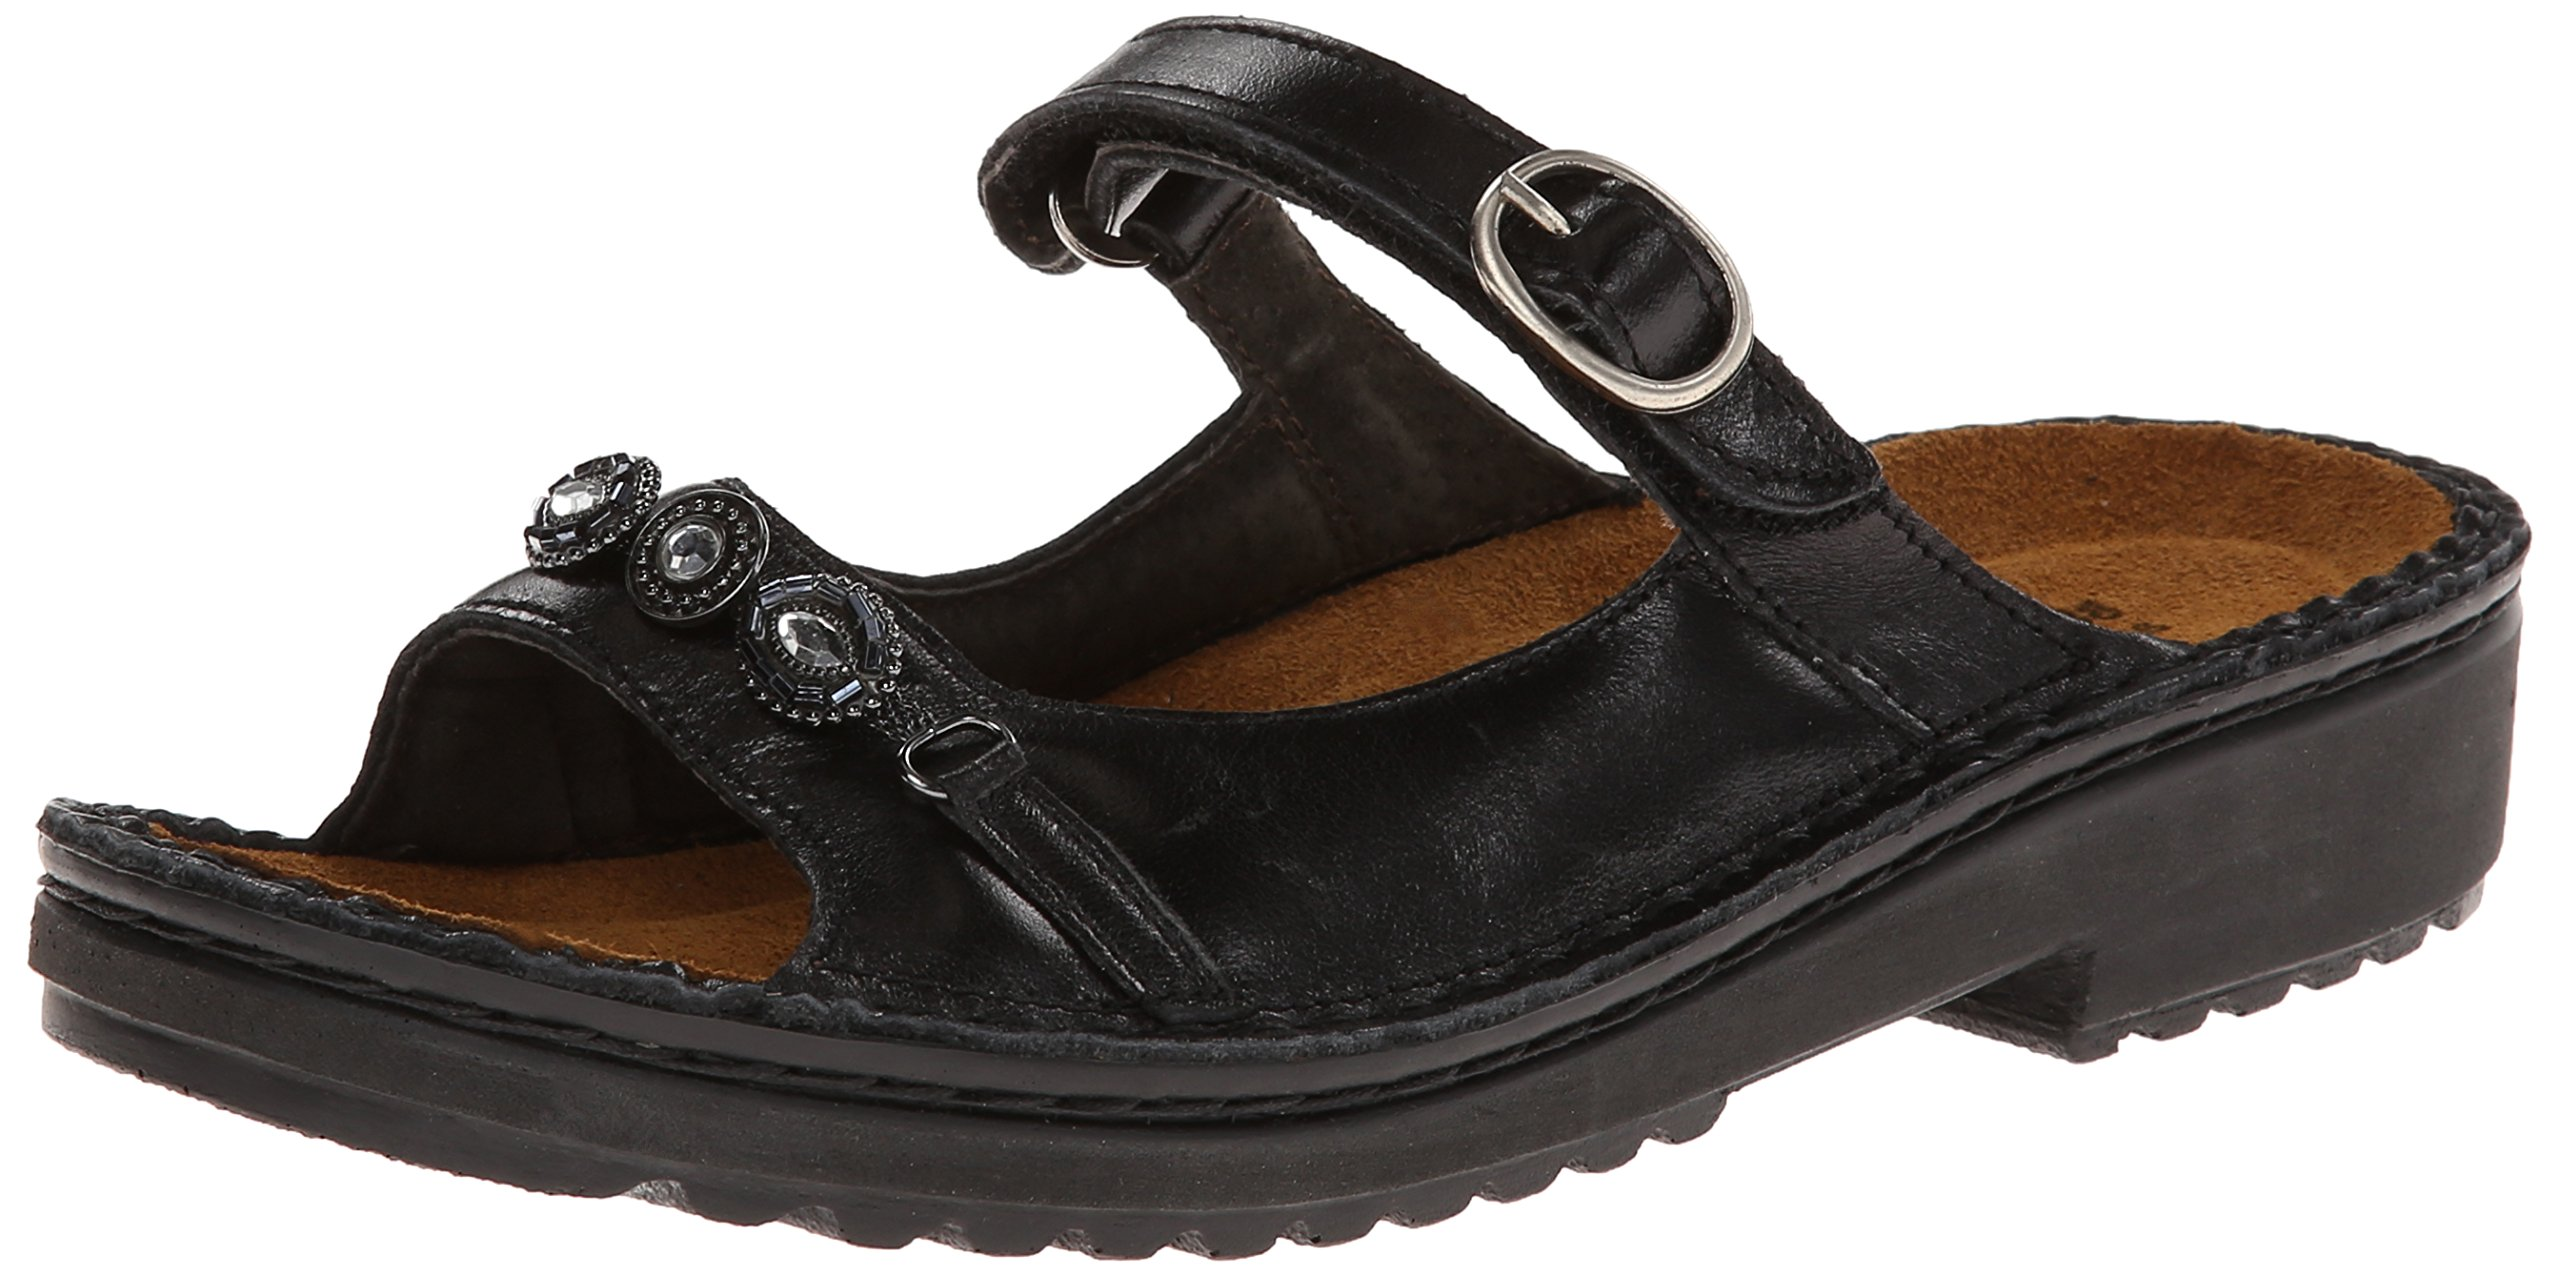 Naot Women's Kyra Flat,Midnight Black Leather,42 EU/10.5-11 M US